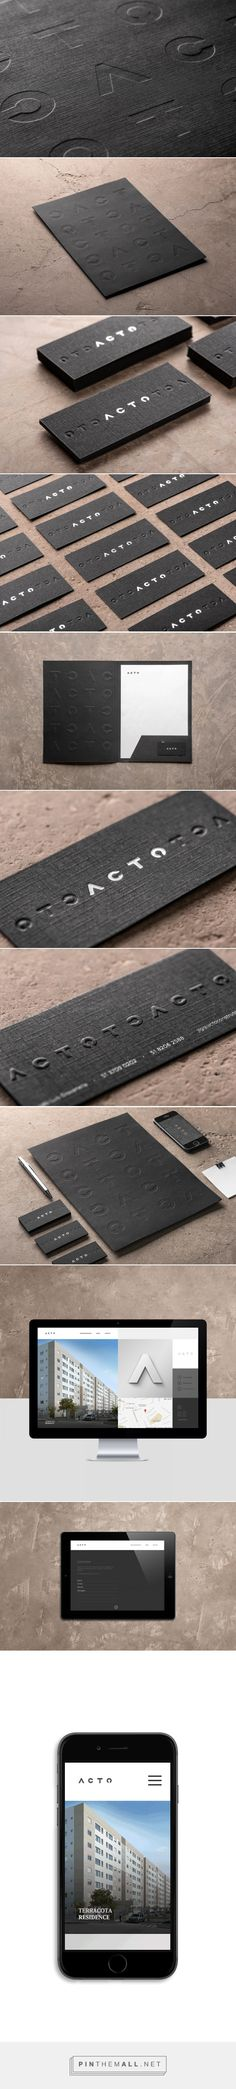 Acto Construction Company Branding by Rodrigo Brod | Fivestar Branding Agency – Design and Branding Agency & Curated Inspiration Gallery